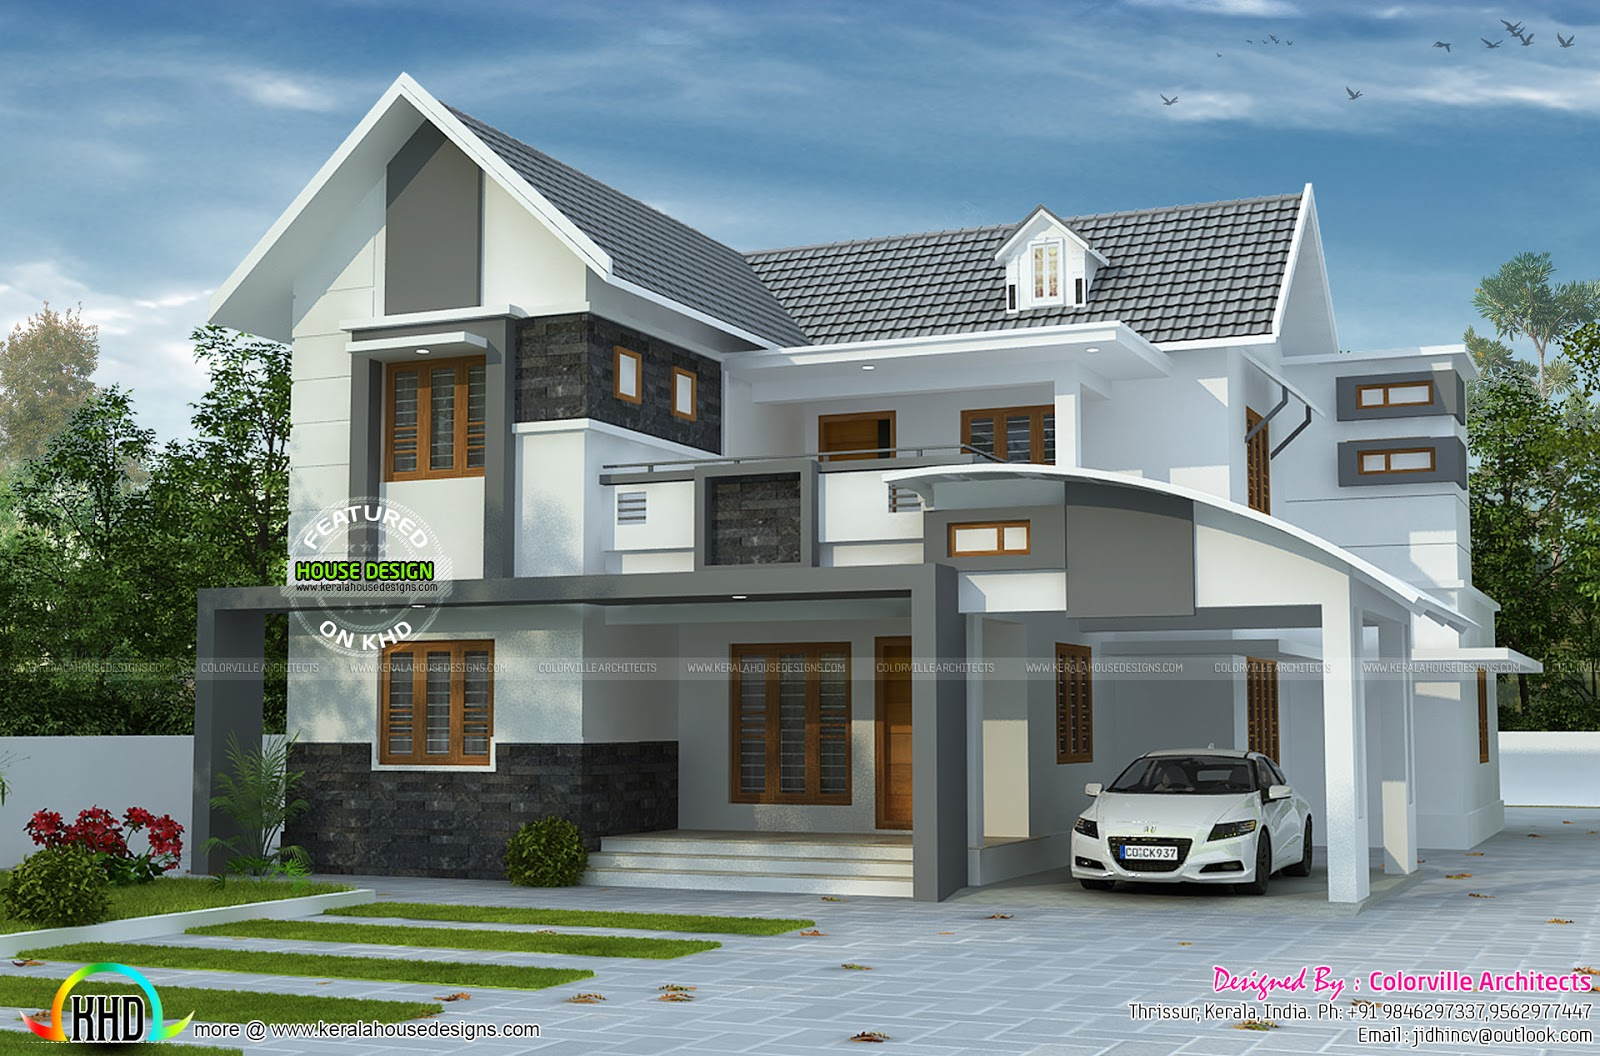 House plan by colorville architects kerala home design for House and design